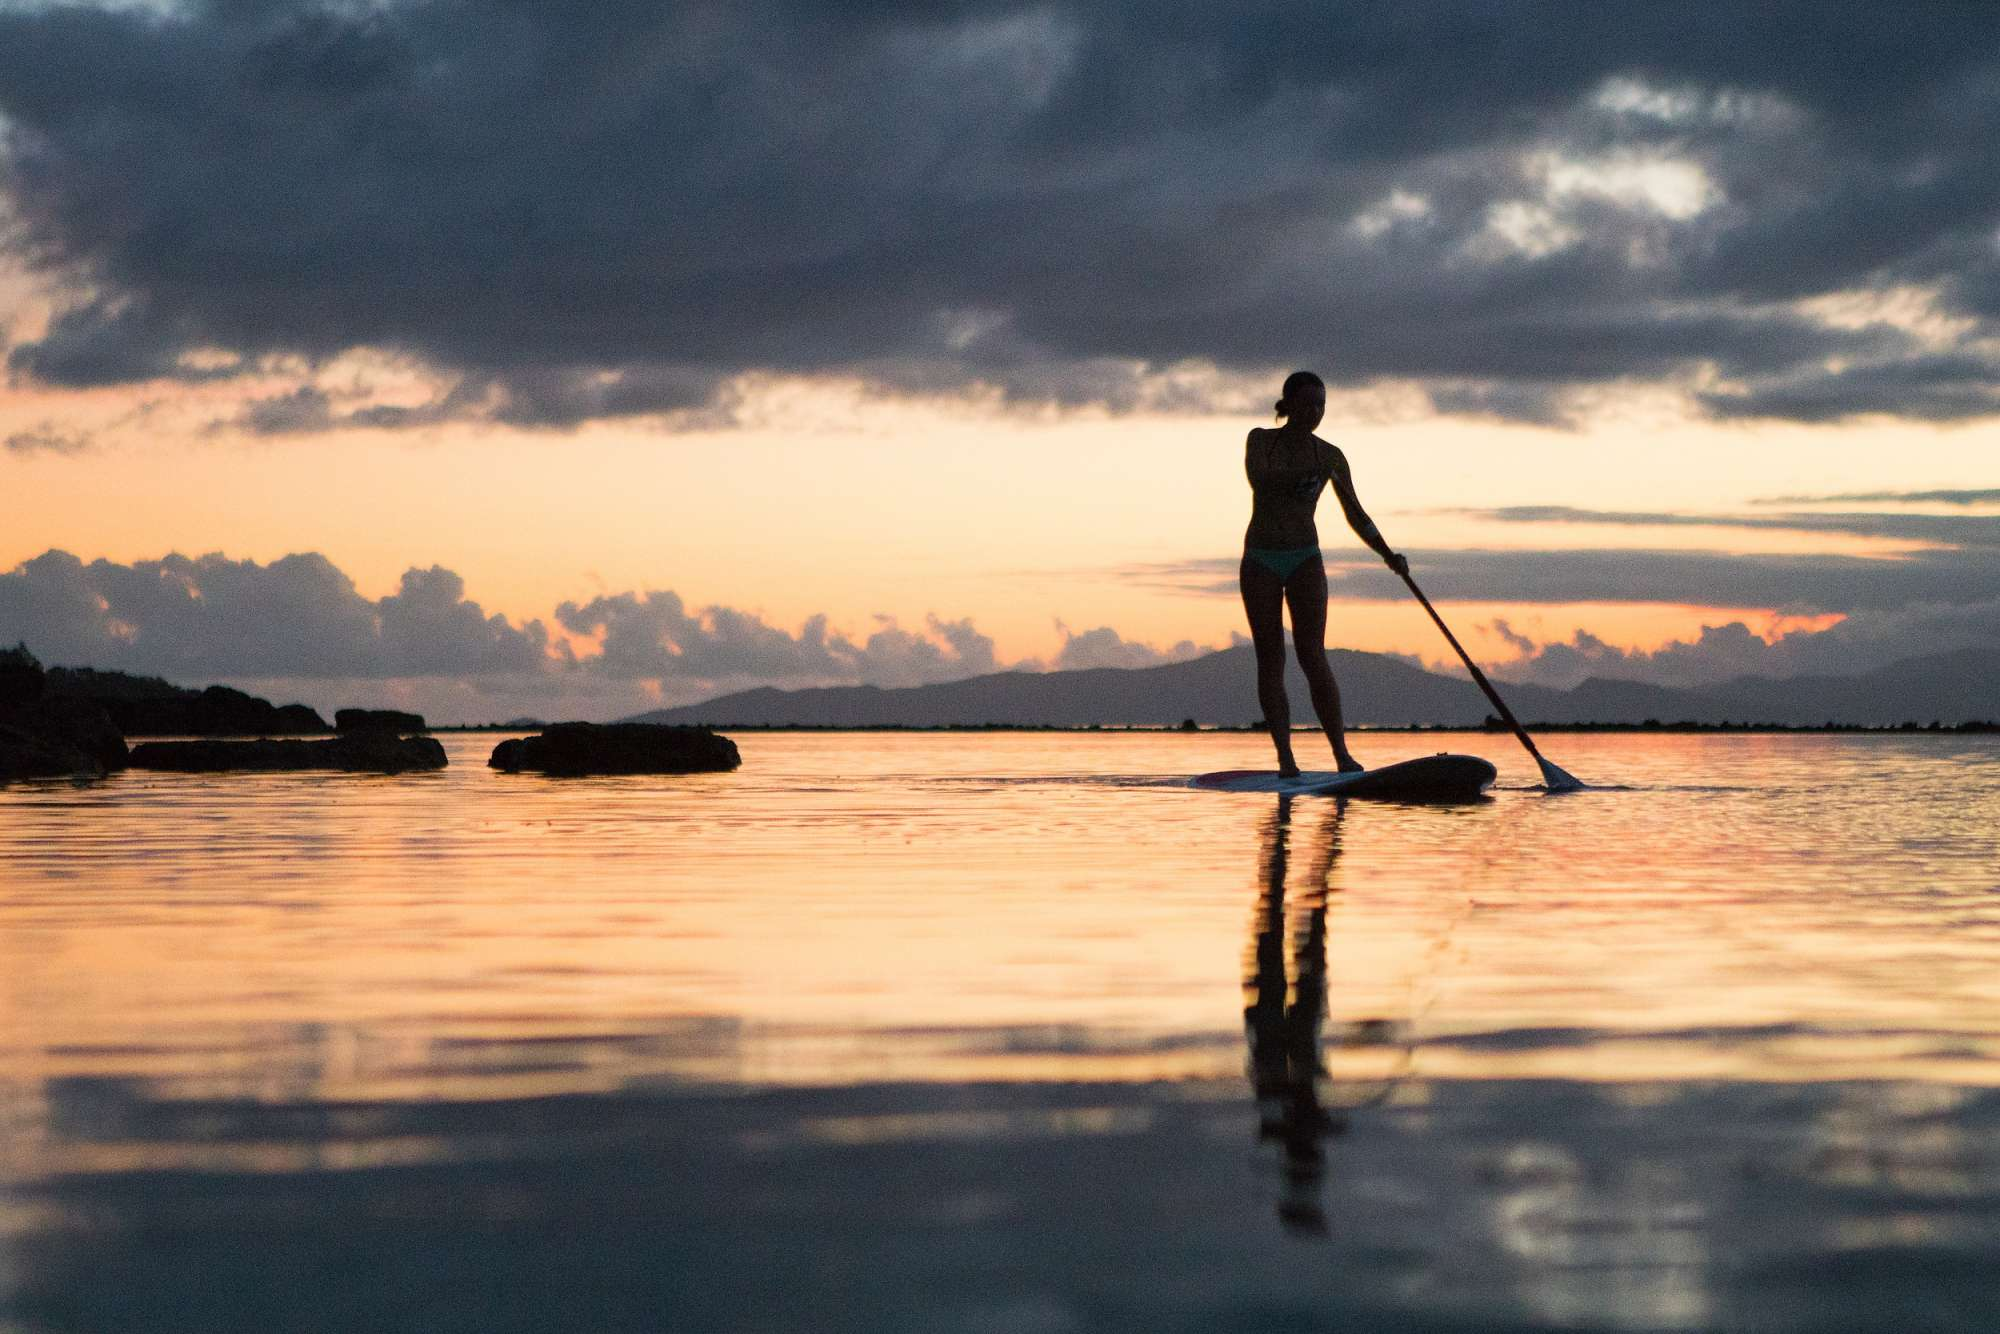 lady stand up paddle boarding in the sea at sunset, at Raiwasa Resort Fiji